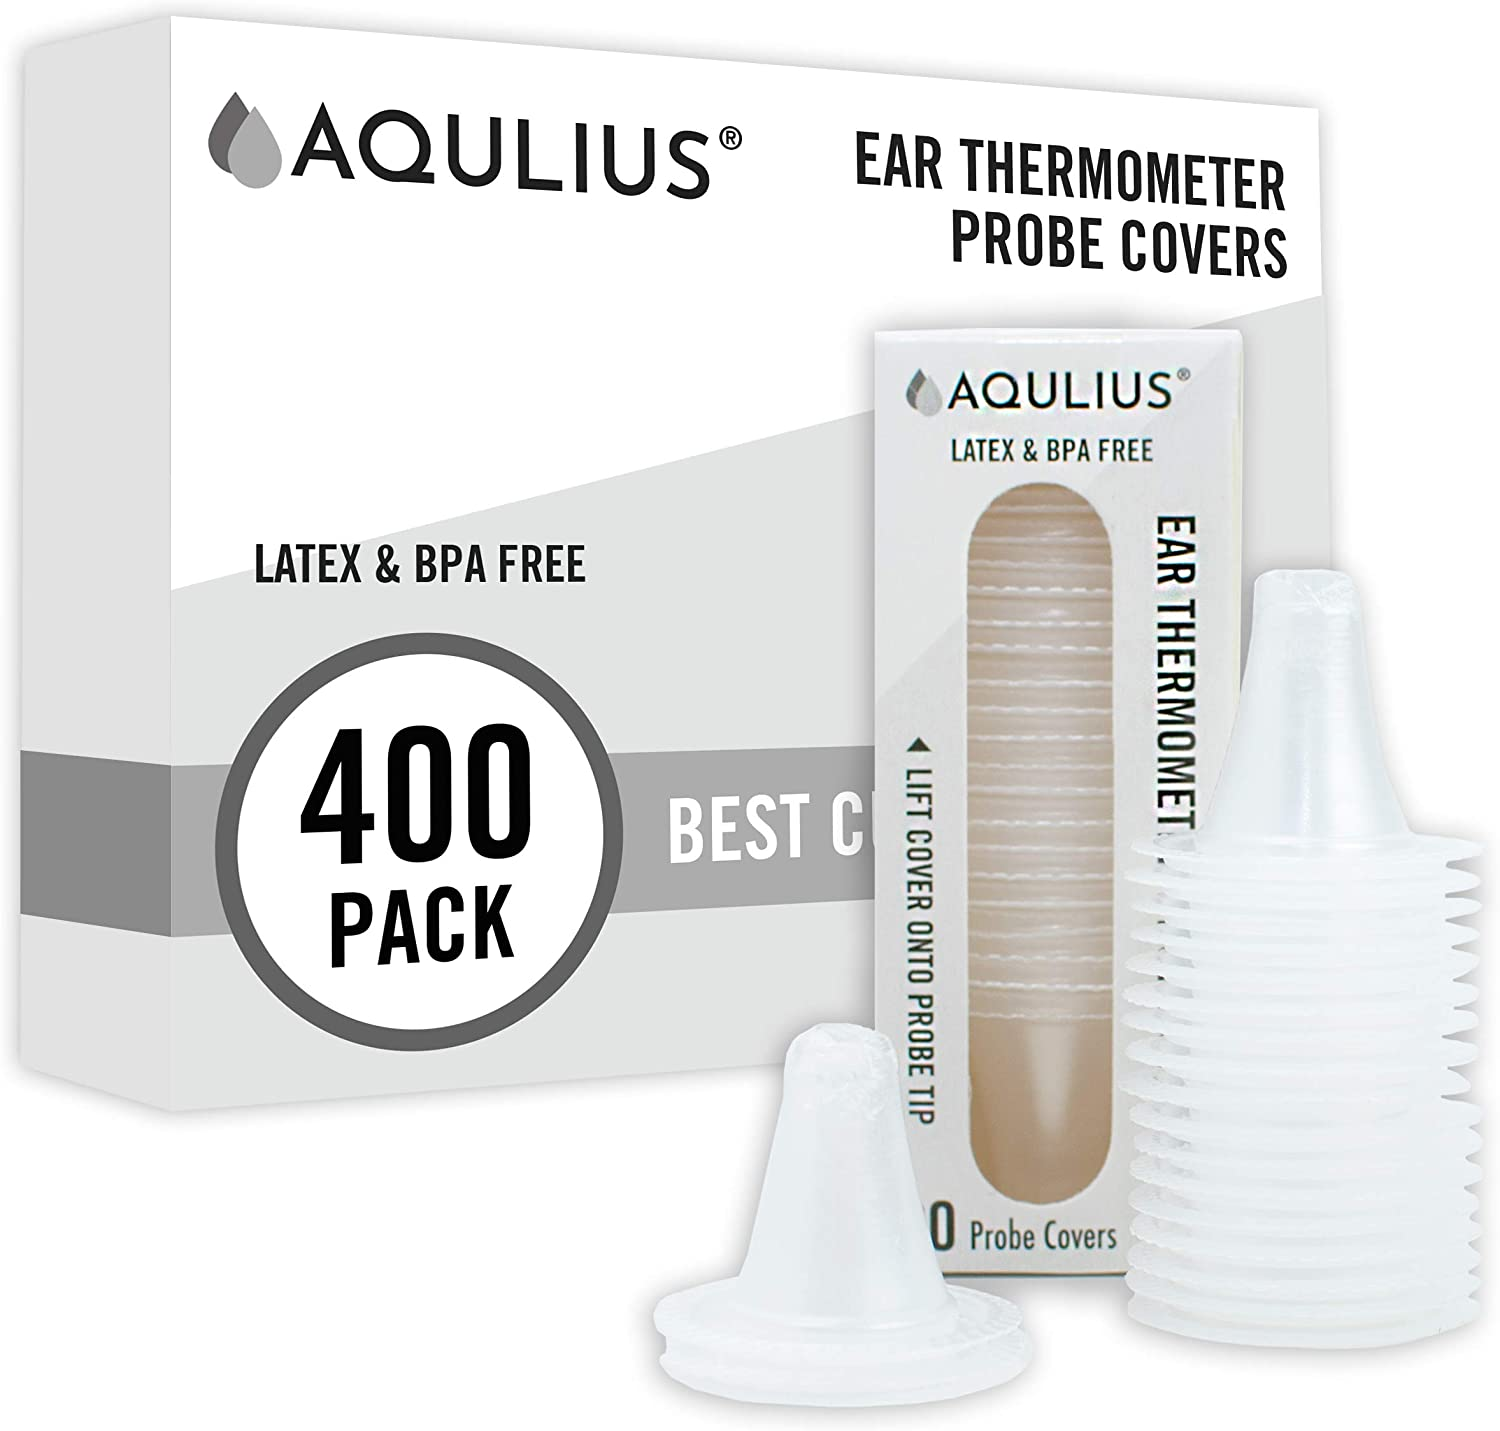 400 Pack of Ear Thermometer Disposable Covers (Universal Fit - Medical Grade) Compatible with All Braun Thermoscan & Phillips Ear Thermometers - Bulk Refill Pack of 400: Health & Personal Care